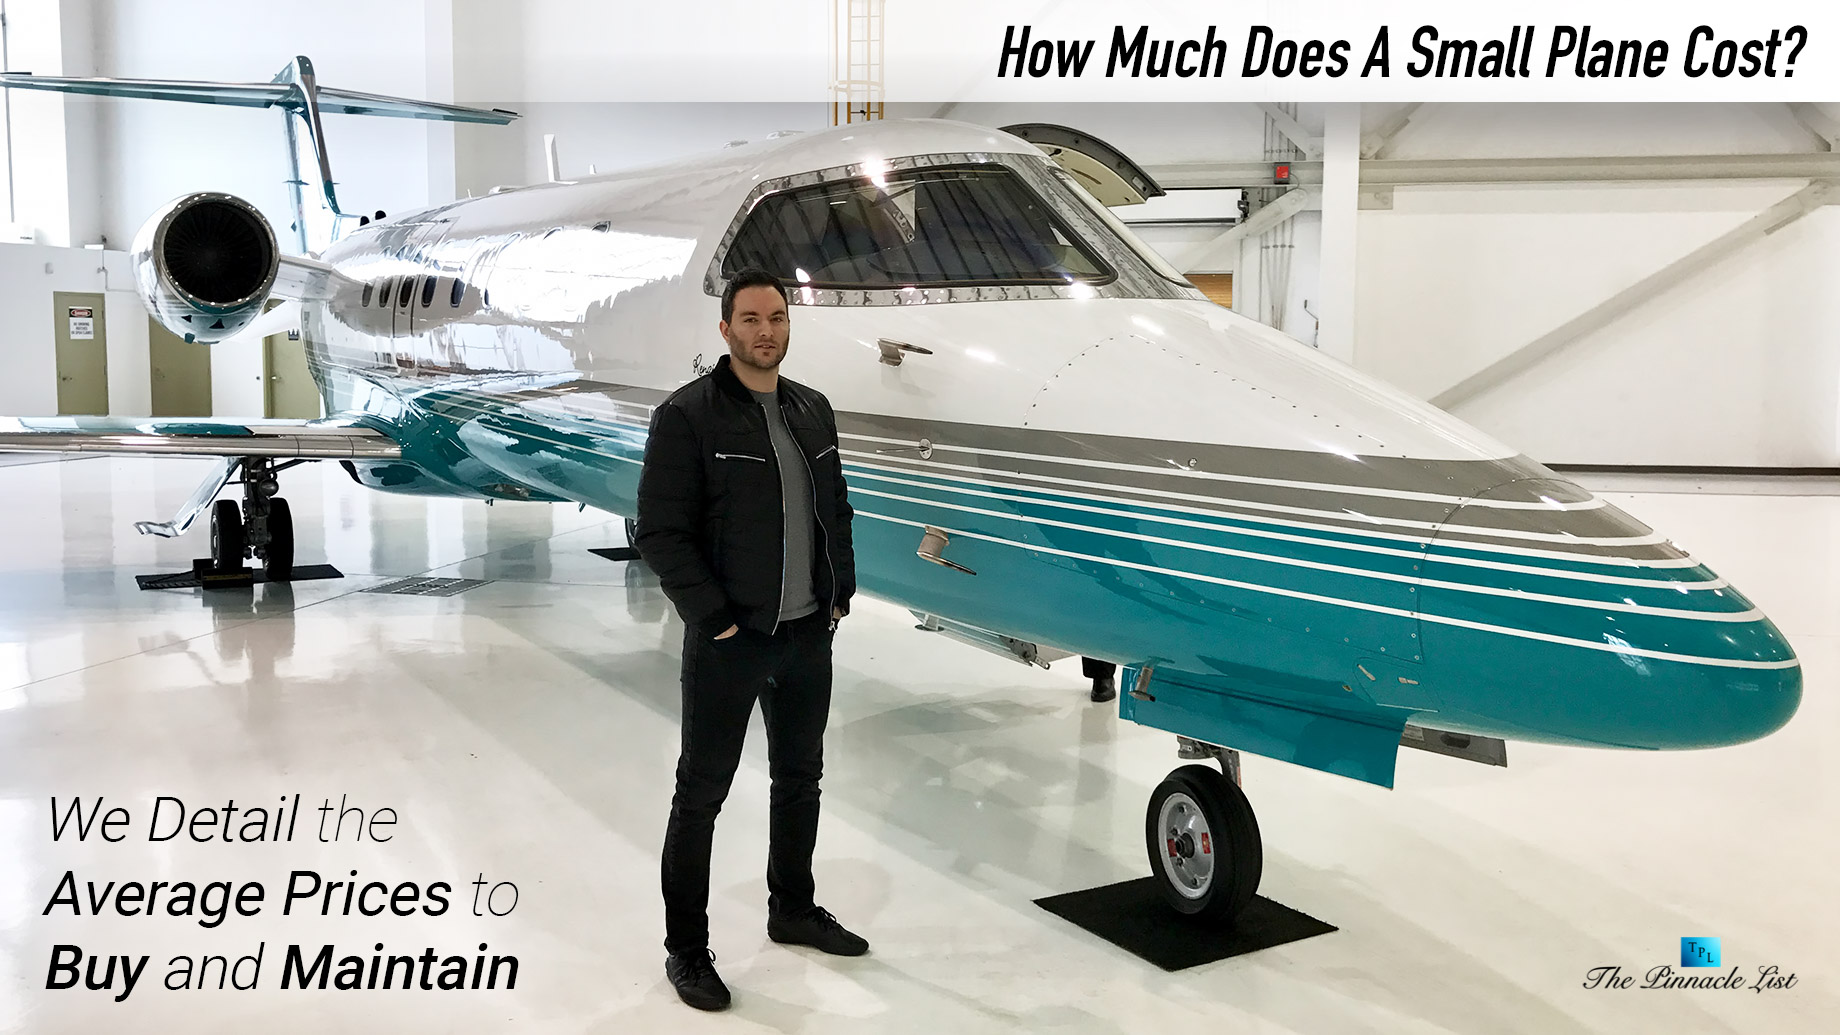 How Much Does A Small Plane Cost? We Detail The Average Prices To Buy And Maintain - Marcus Anthony